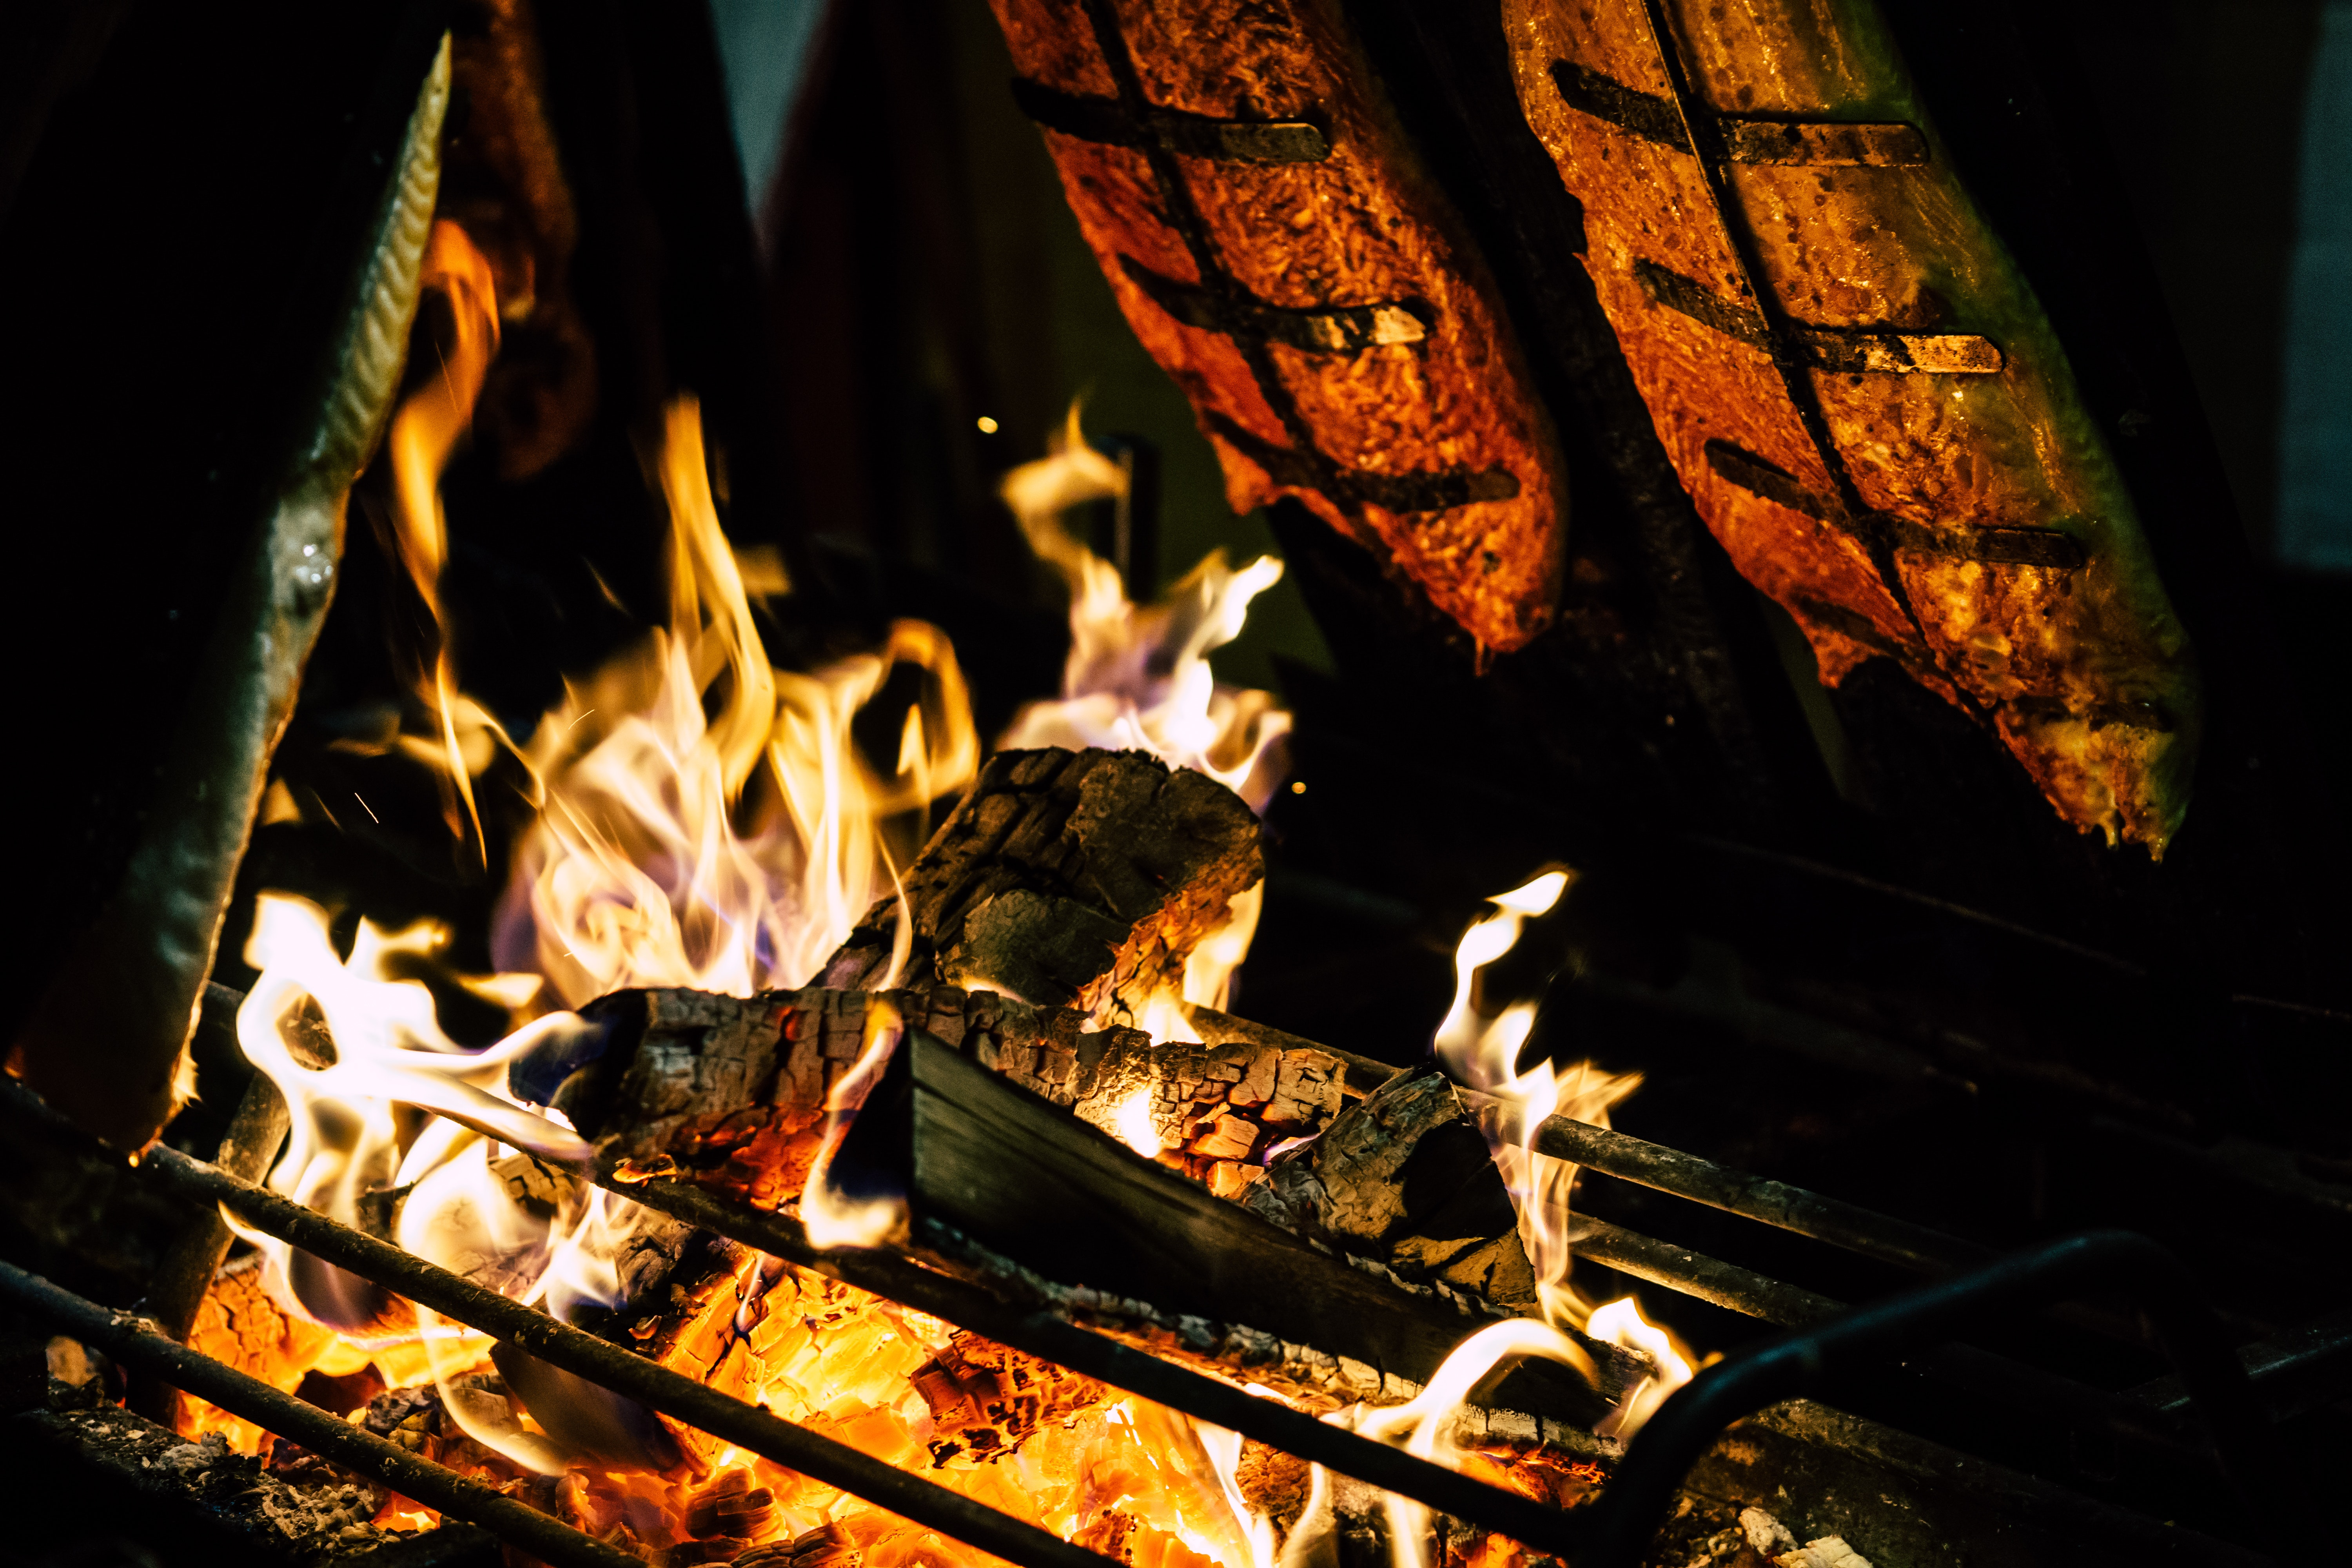 Focal Point Photo of Burning Wood in Black Steel Grate, Fireplace, Fire, Firewood, Heat, HQ Photo